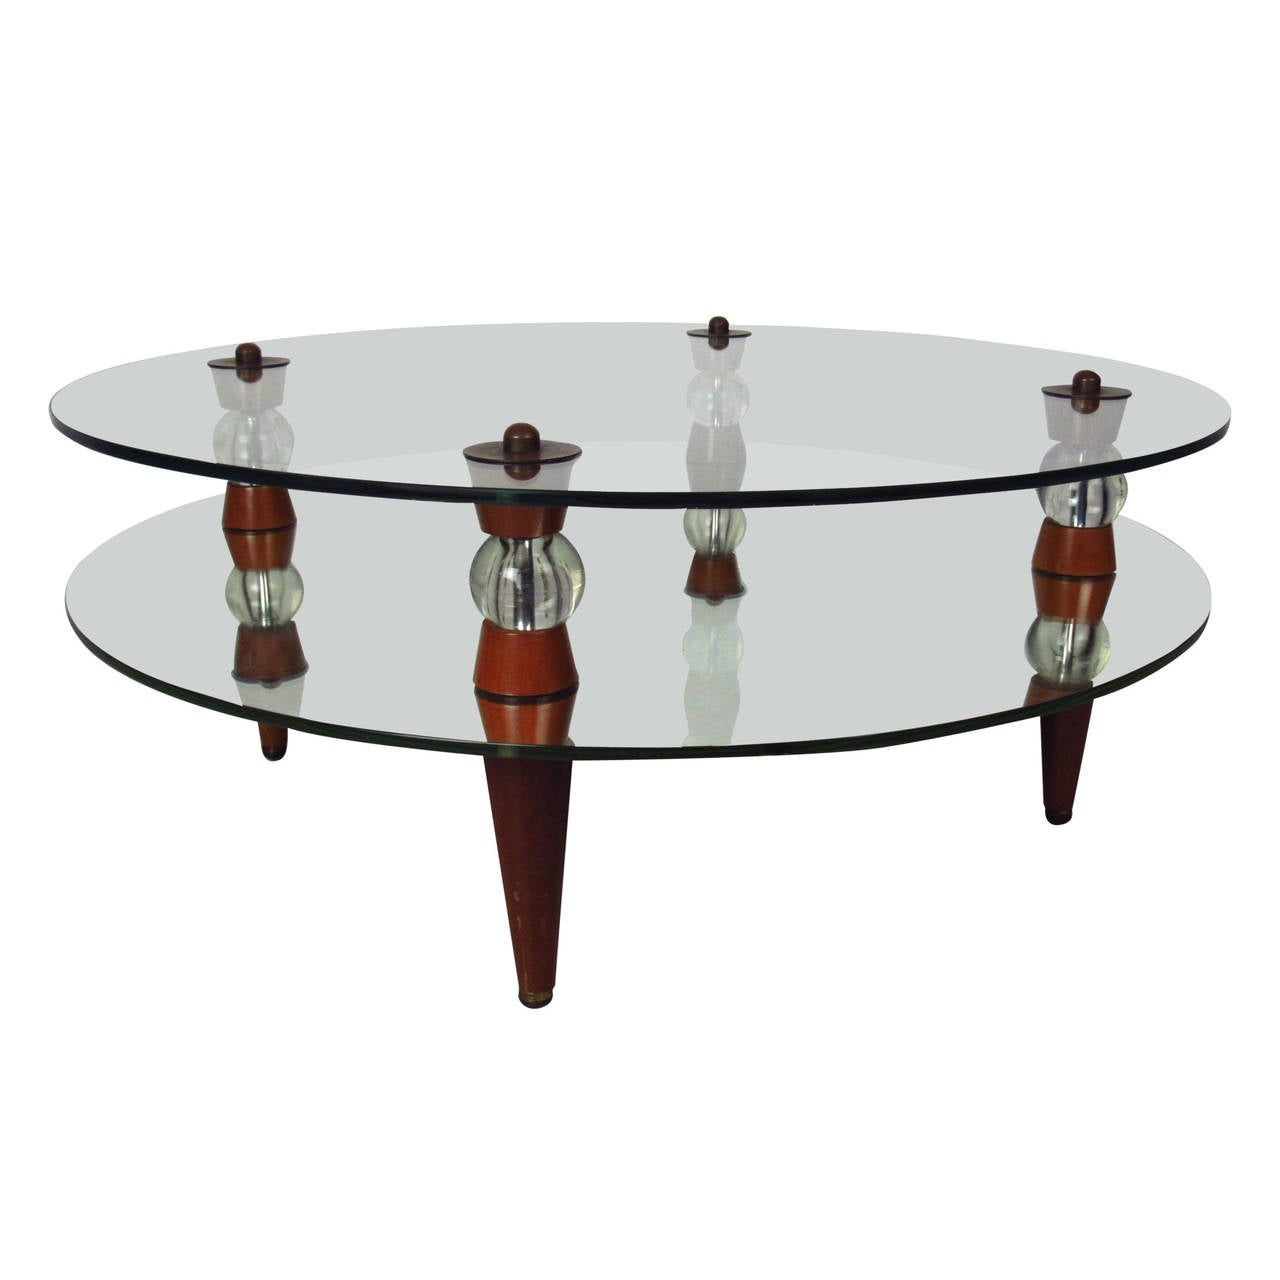 Stylish italian modern coffee table for sale at 1stdibs for Modern coffee table for sale